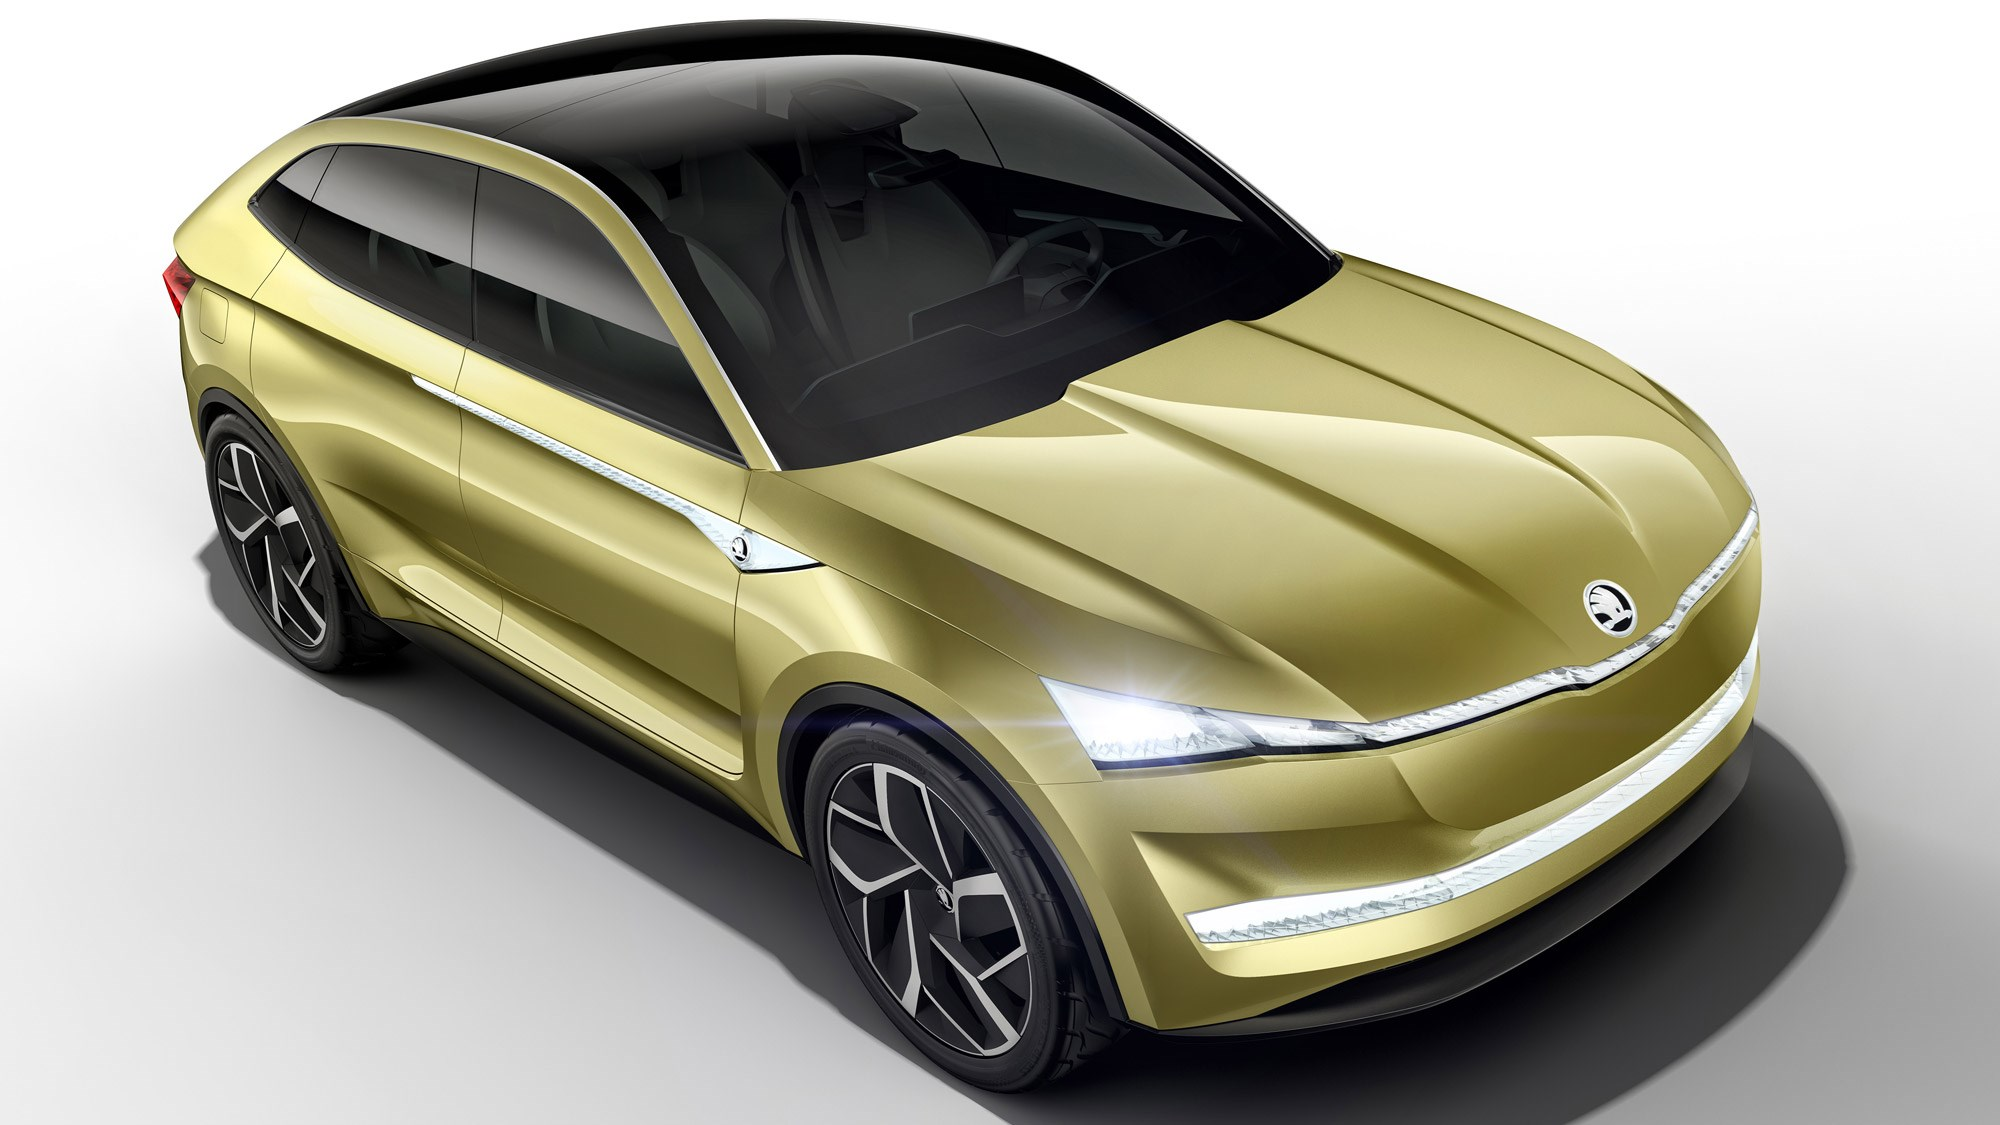 skoda gears up for electric car onslaught after record year car magazine. Black Bedroom Furniture Sets. Home Design Ideas